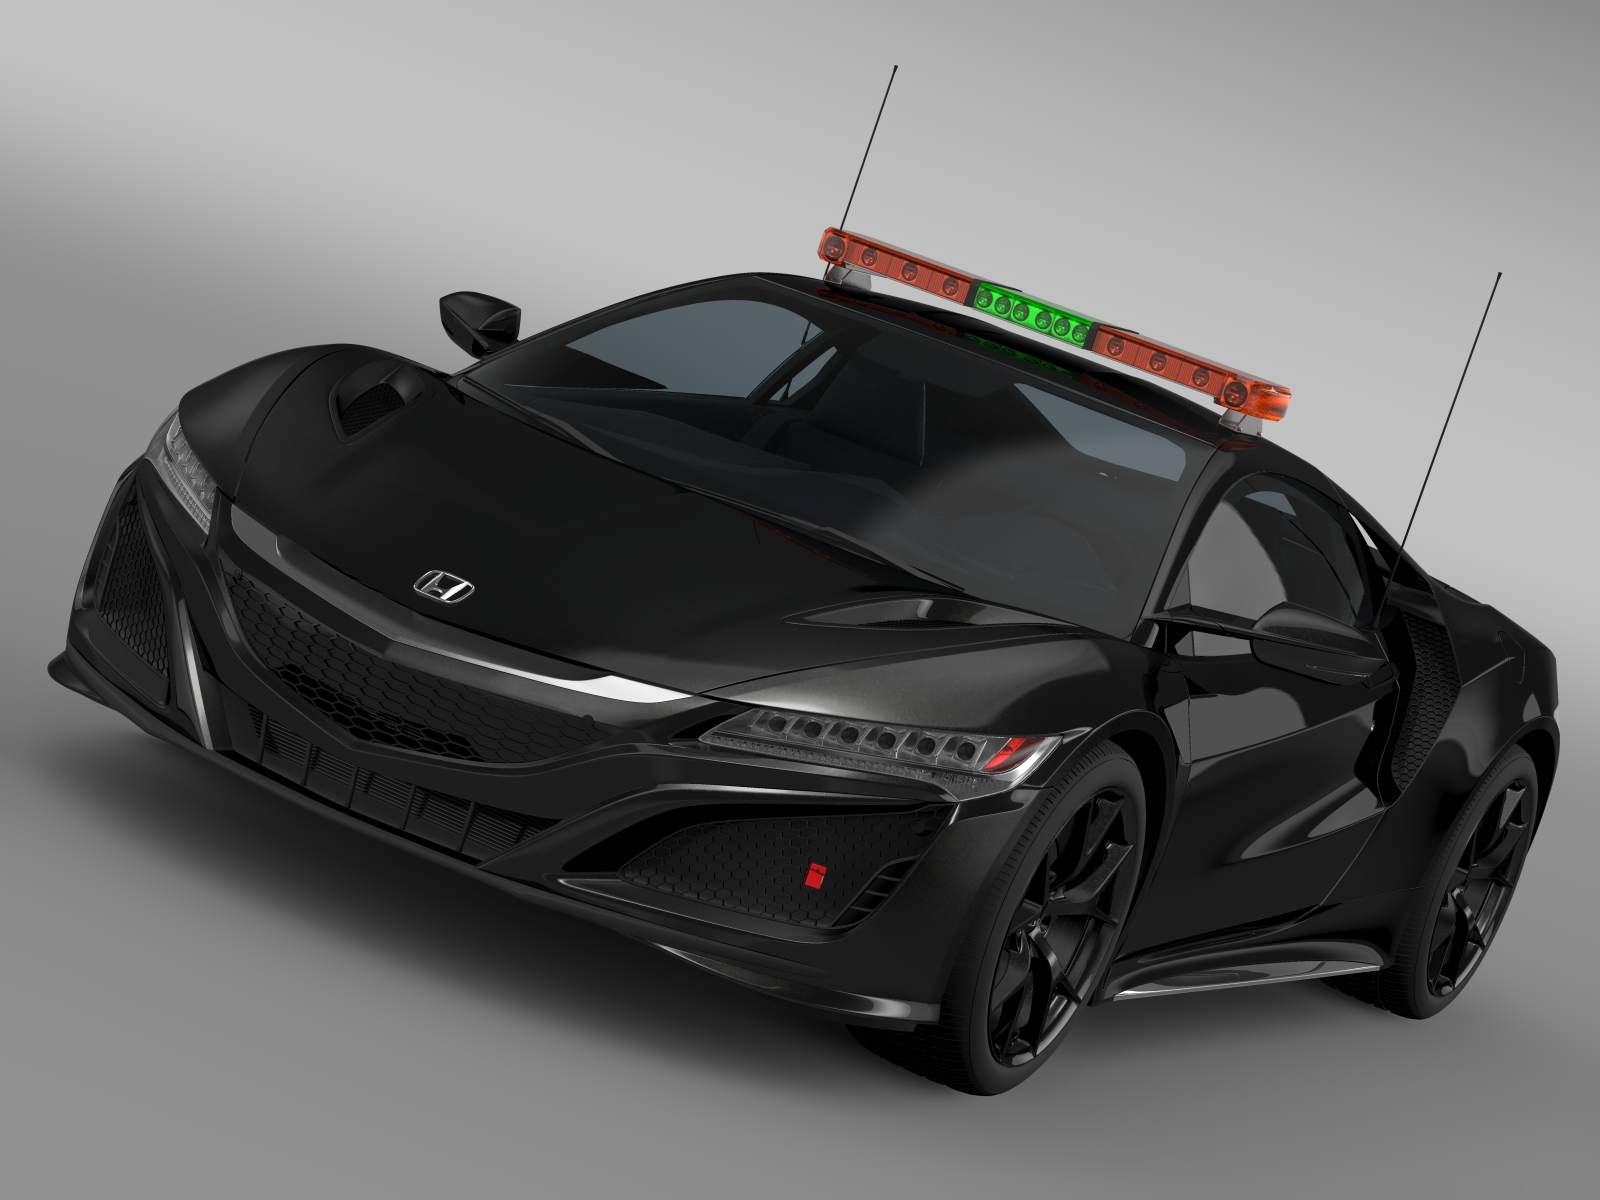 honda nsx 2016 safety car 3d model 3ds max fbx c4d lwo ma mb hrc xsi obj 215727